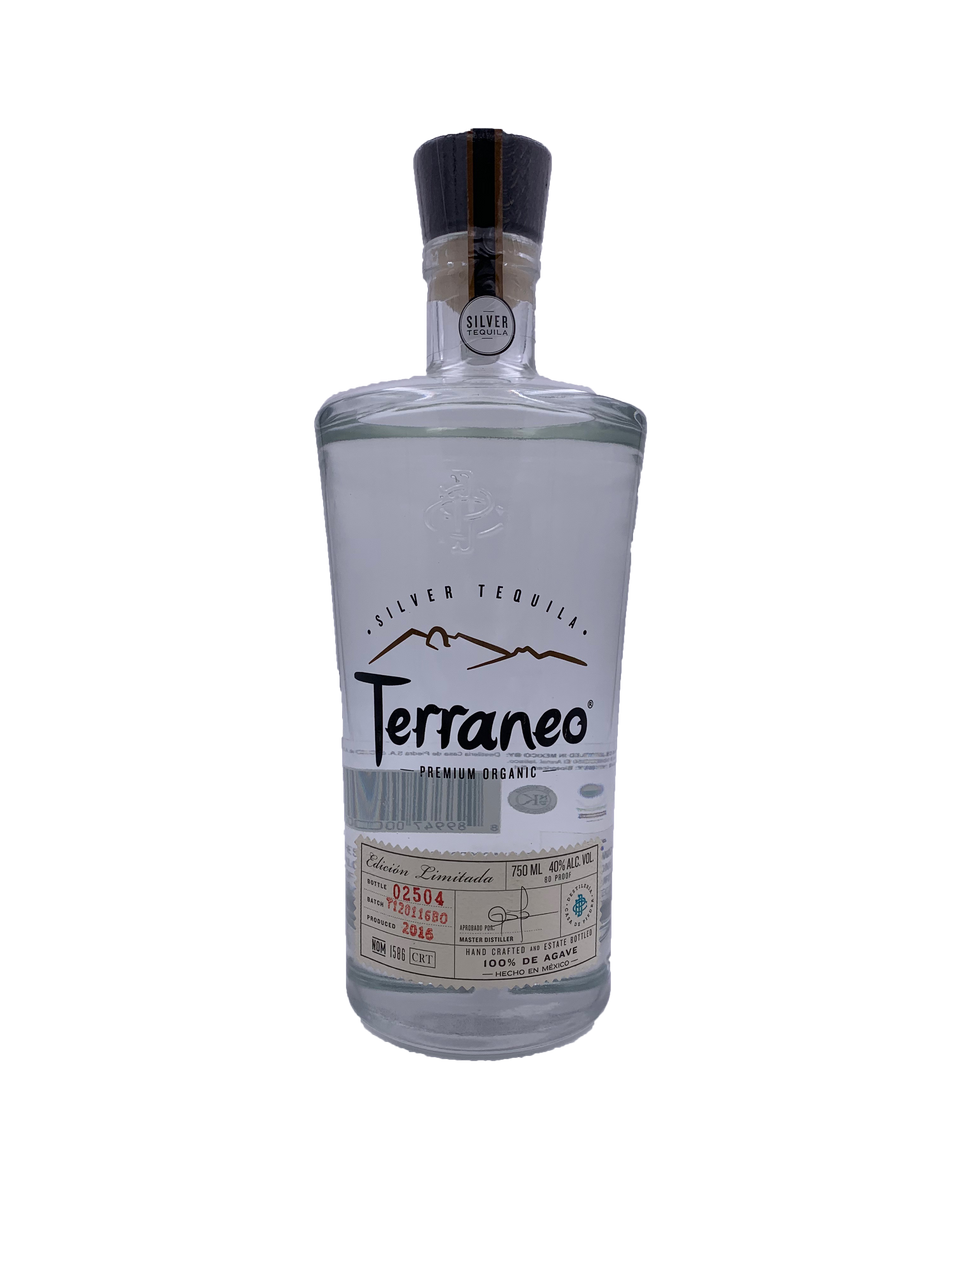 Terraneo Silver Premium Organic Tequila Old Town Tequila